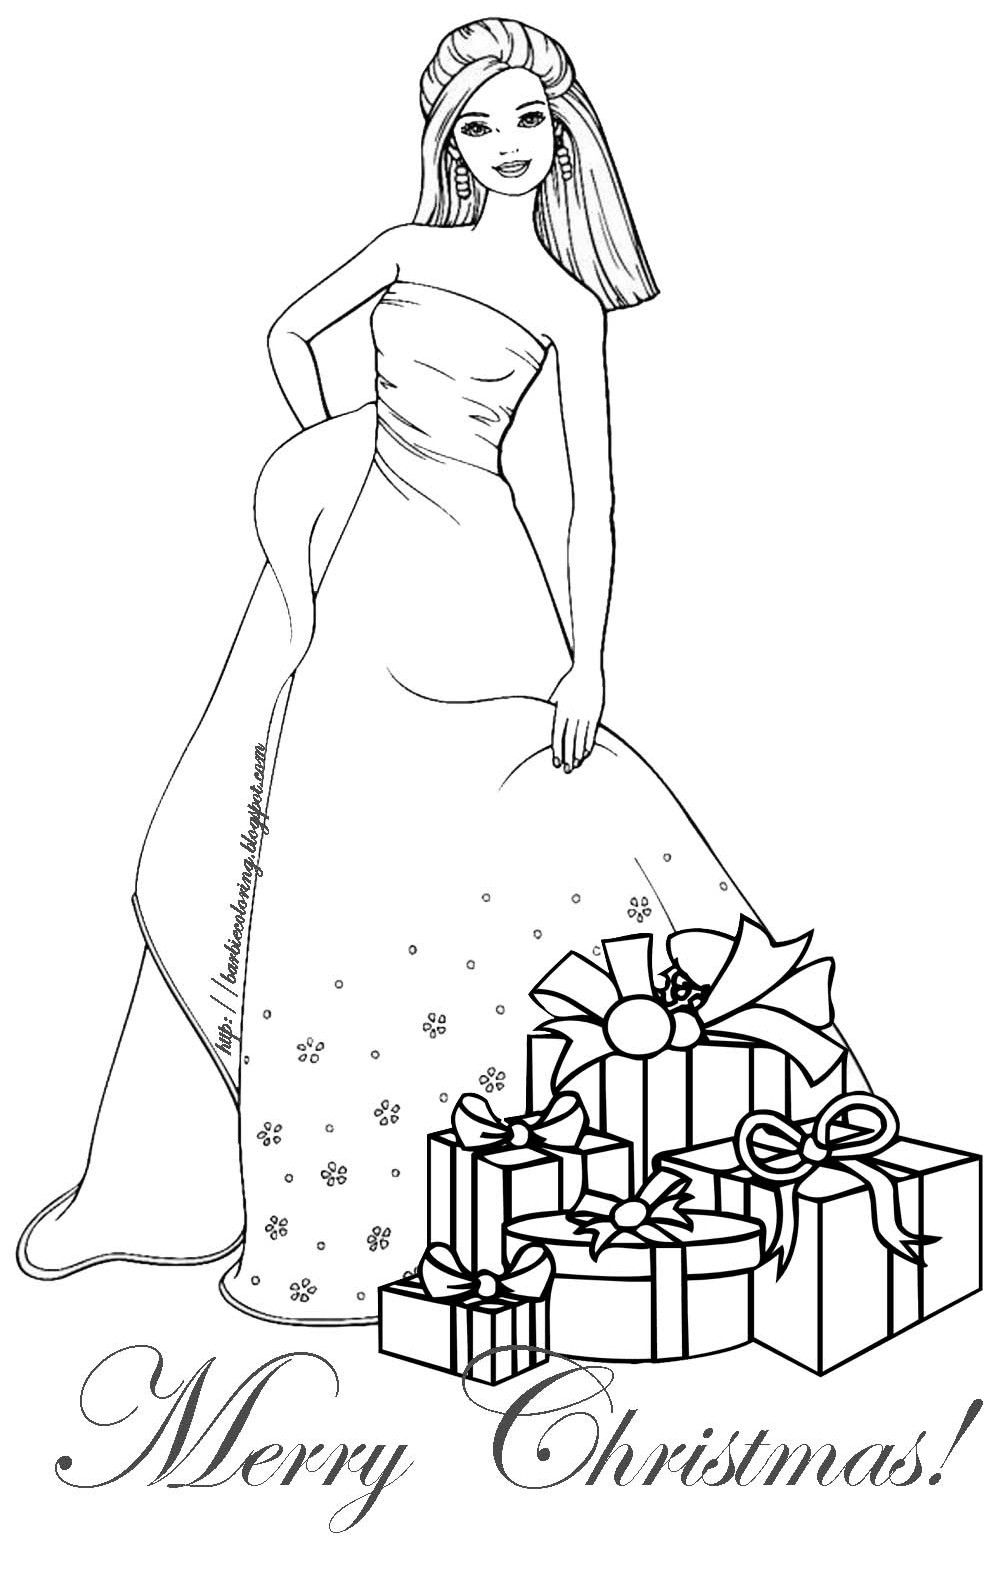 Barbie Coloring Pages Barbie Christmas Coloring Page Barbie Coloring Pages Barbie Coloring Santa Coloring Pages